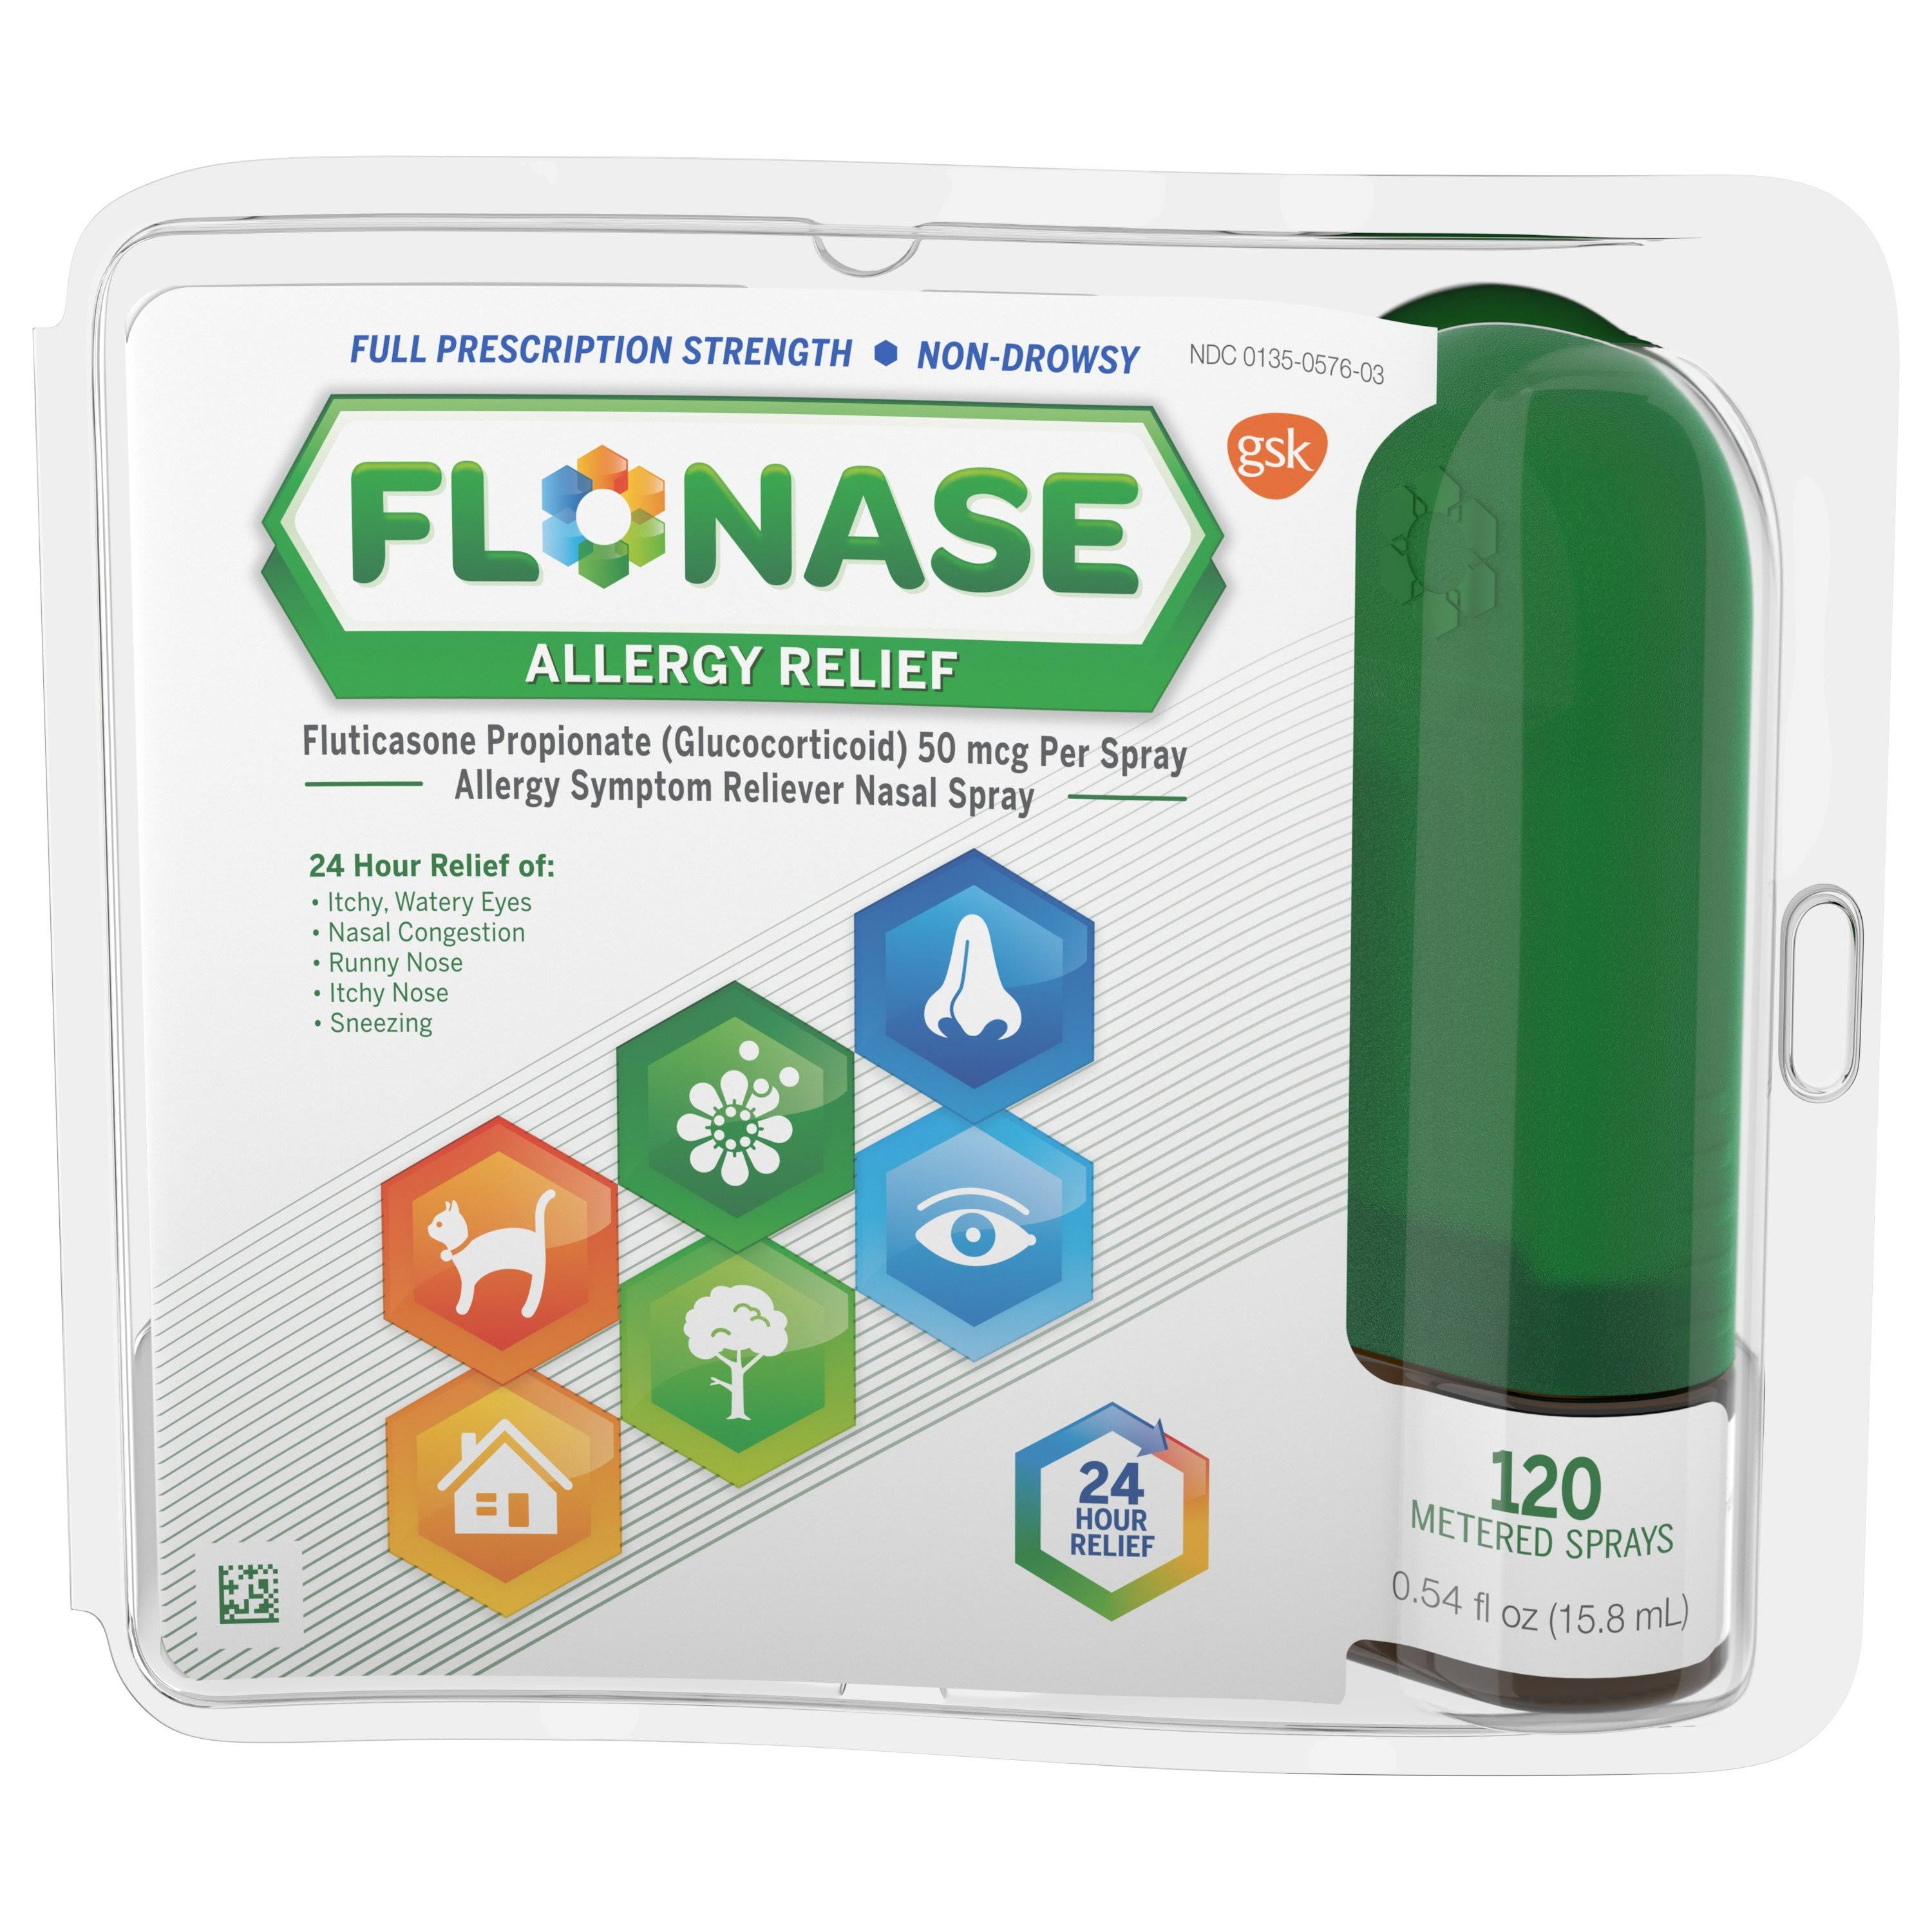 Flonase Allergy Symptom Reliever Nasal Spray - 15.8ml